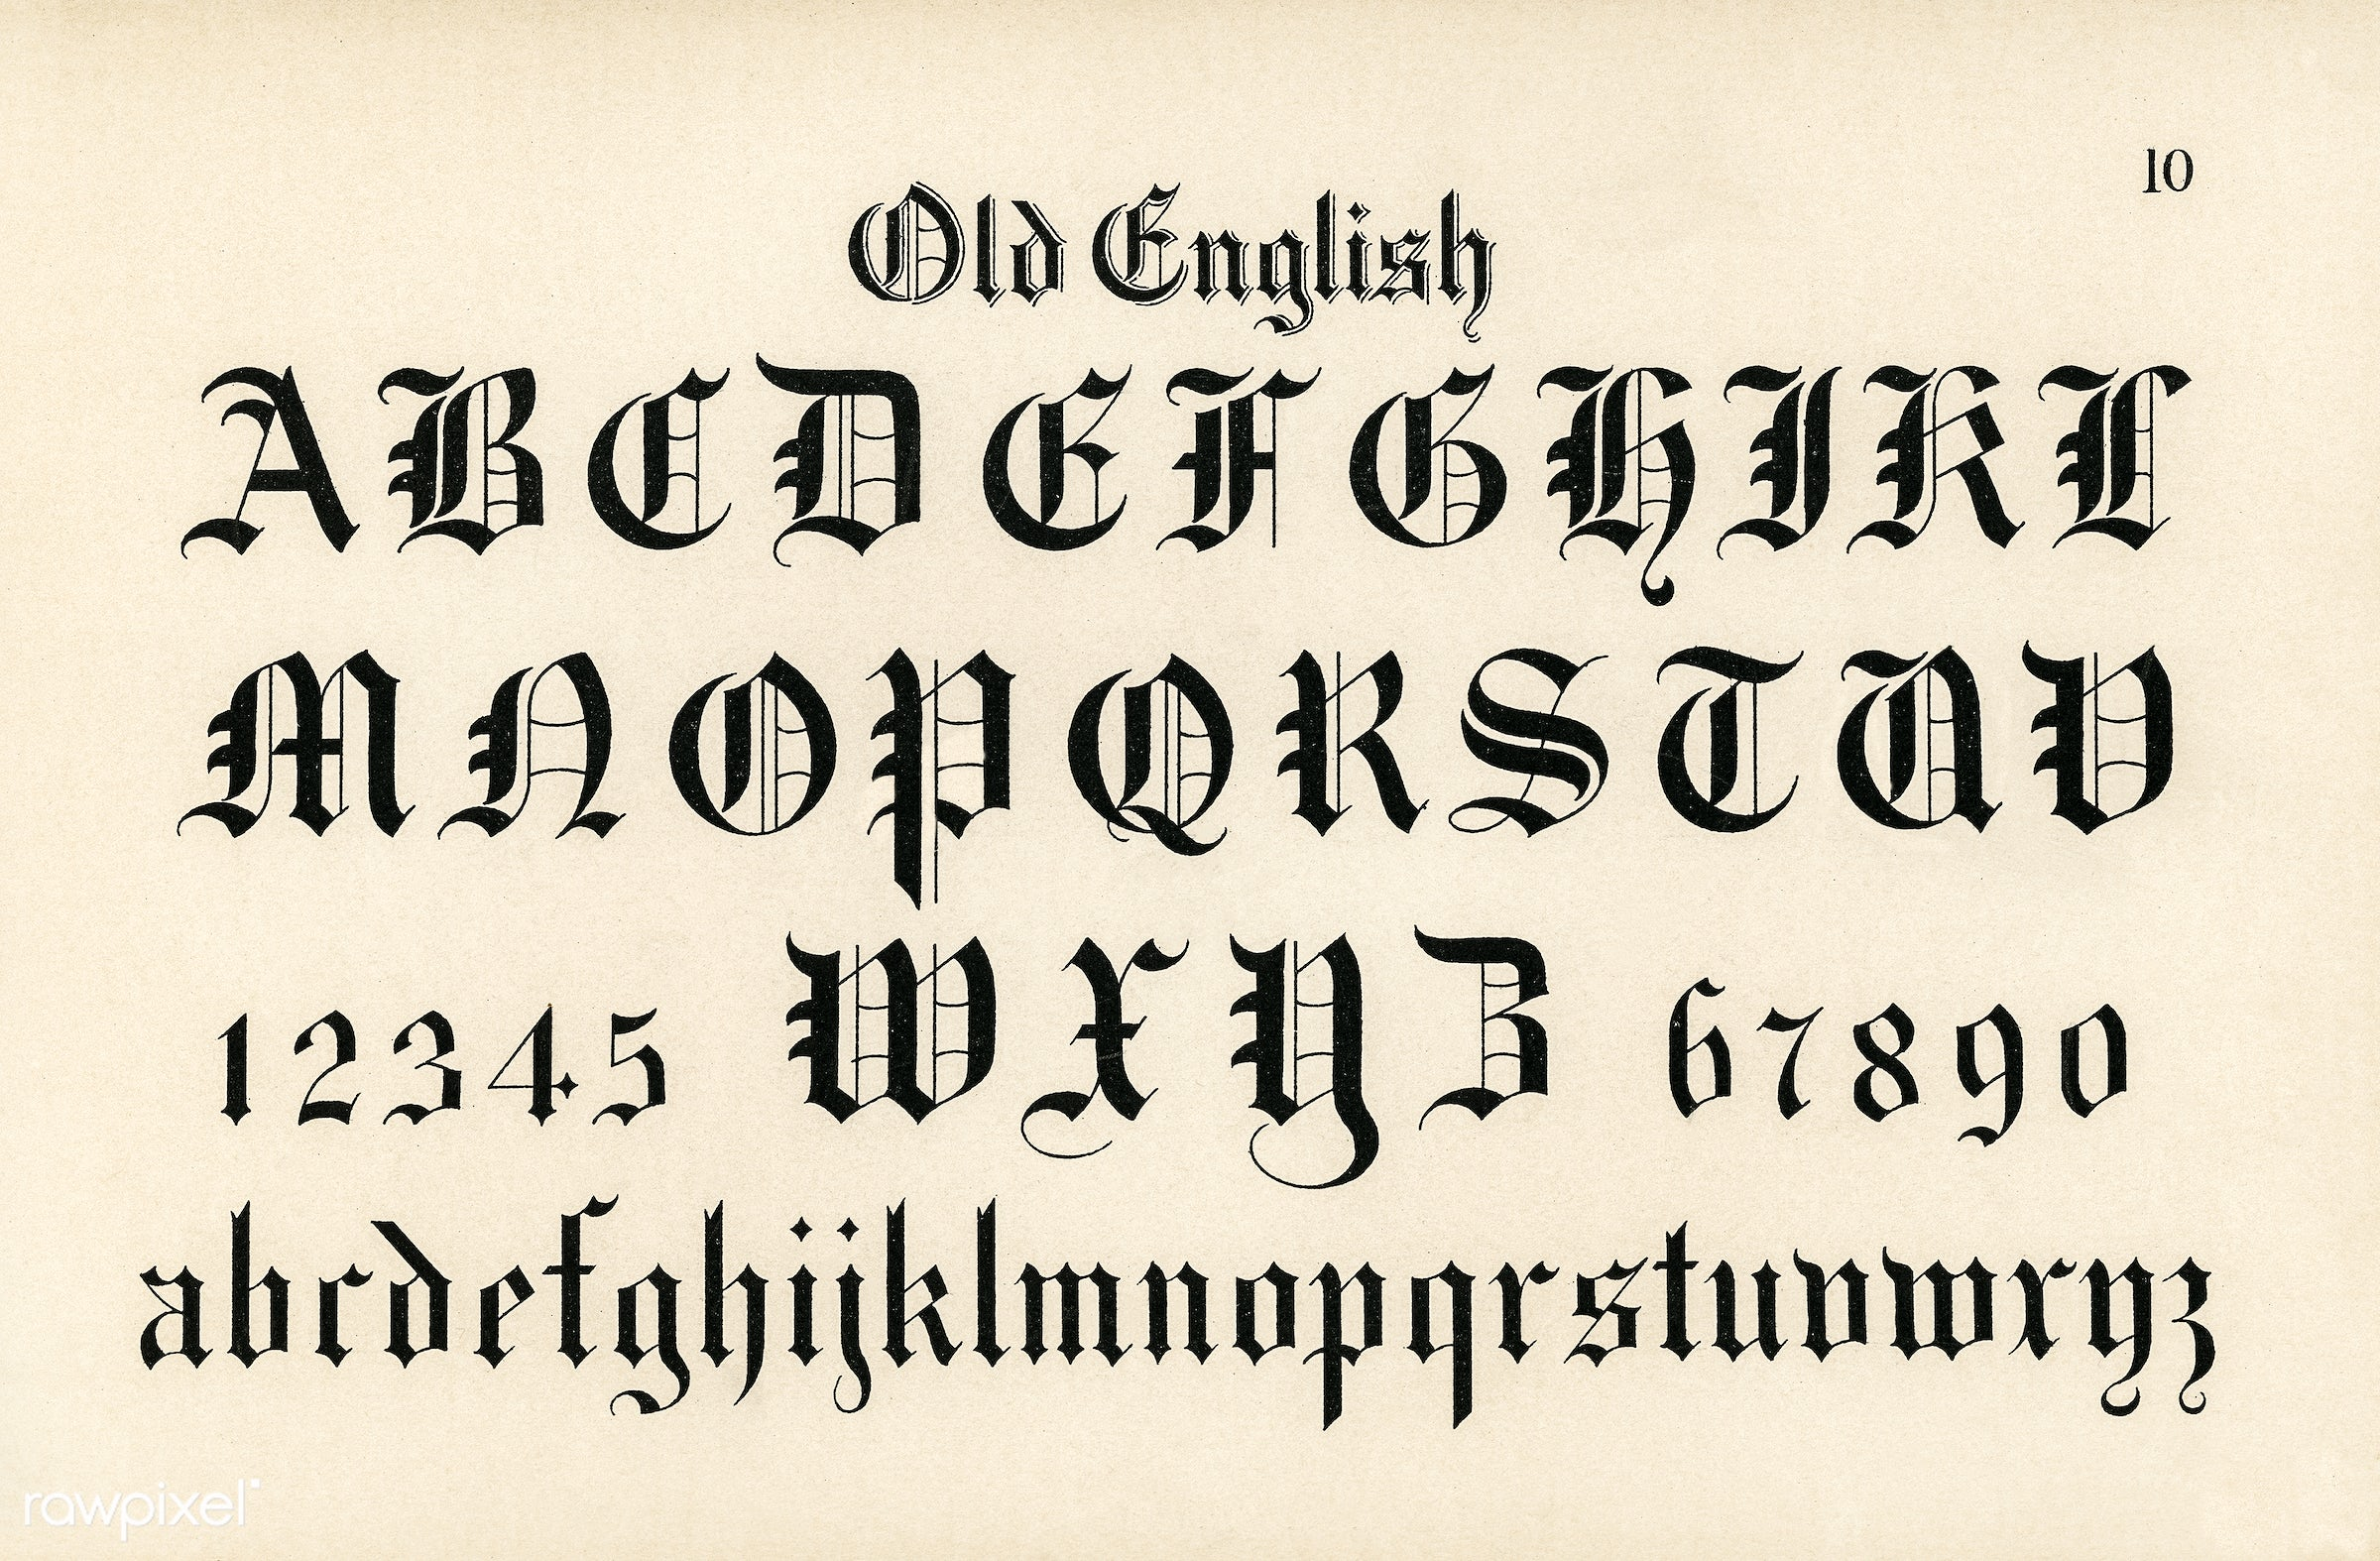 Old English Calligraphy Fonts From Draughtsmans Alphabets By Hermann Esser 1845 1908